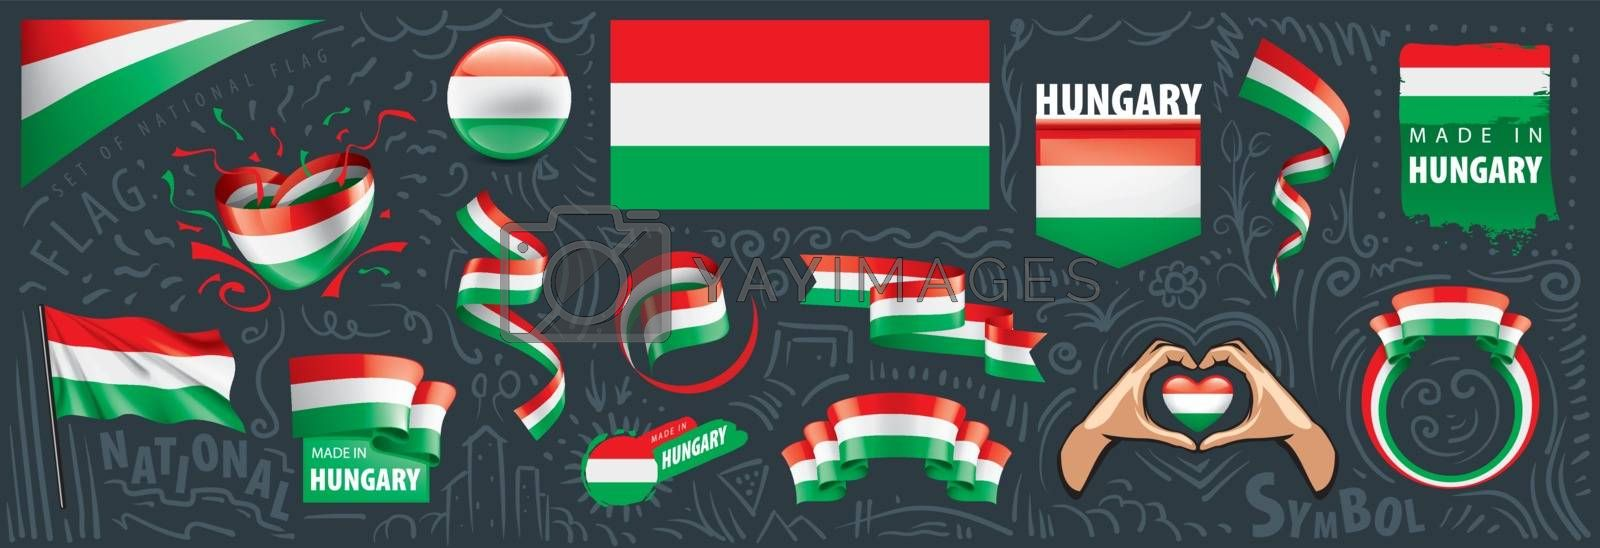 Vector set of the national flag of Hungary in various creative designs.